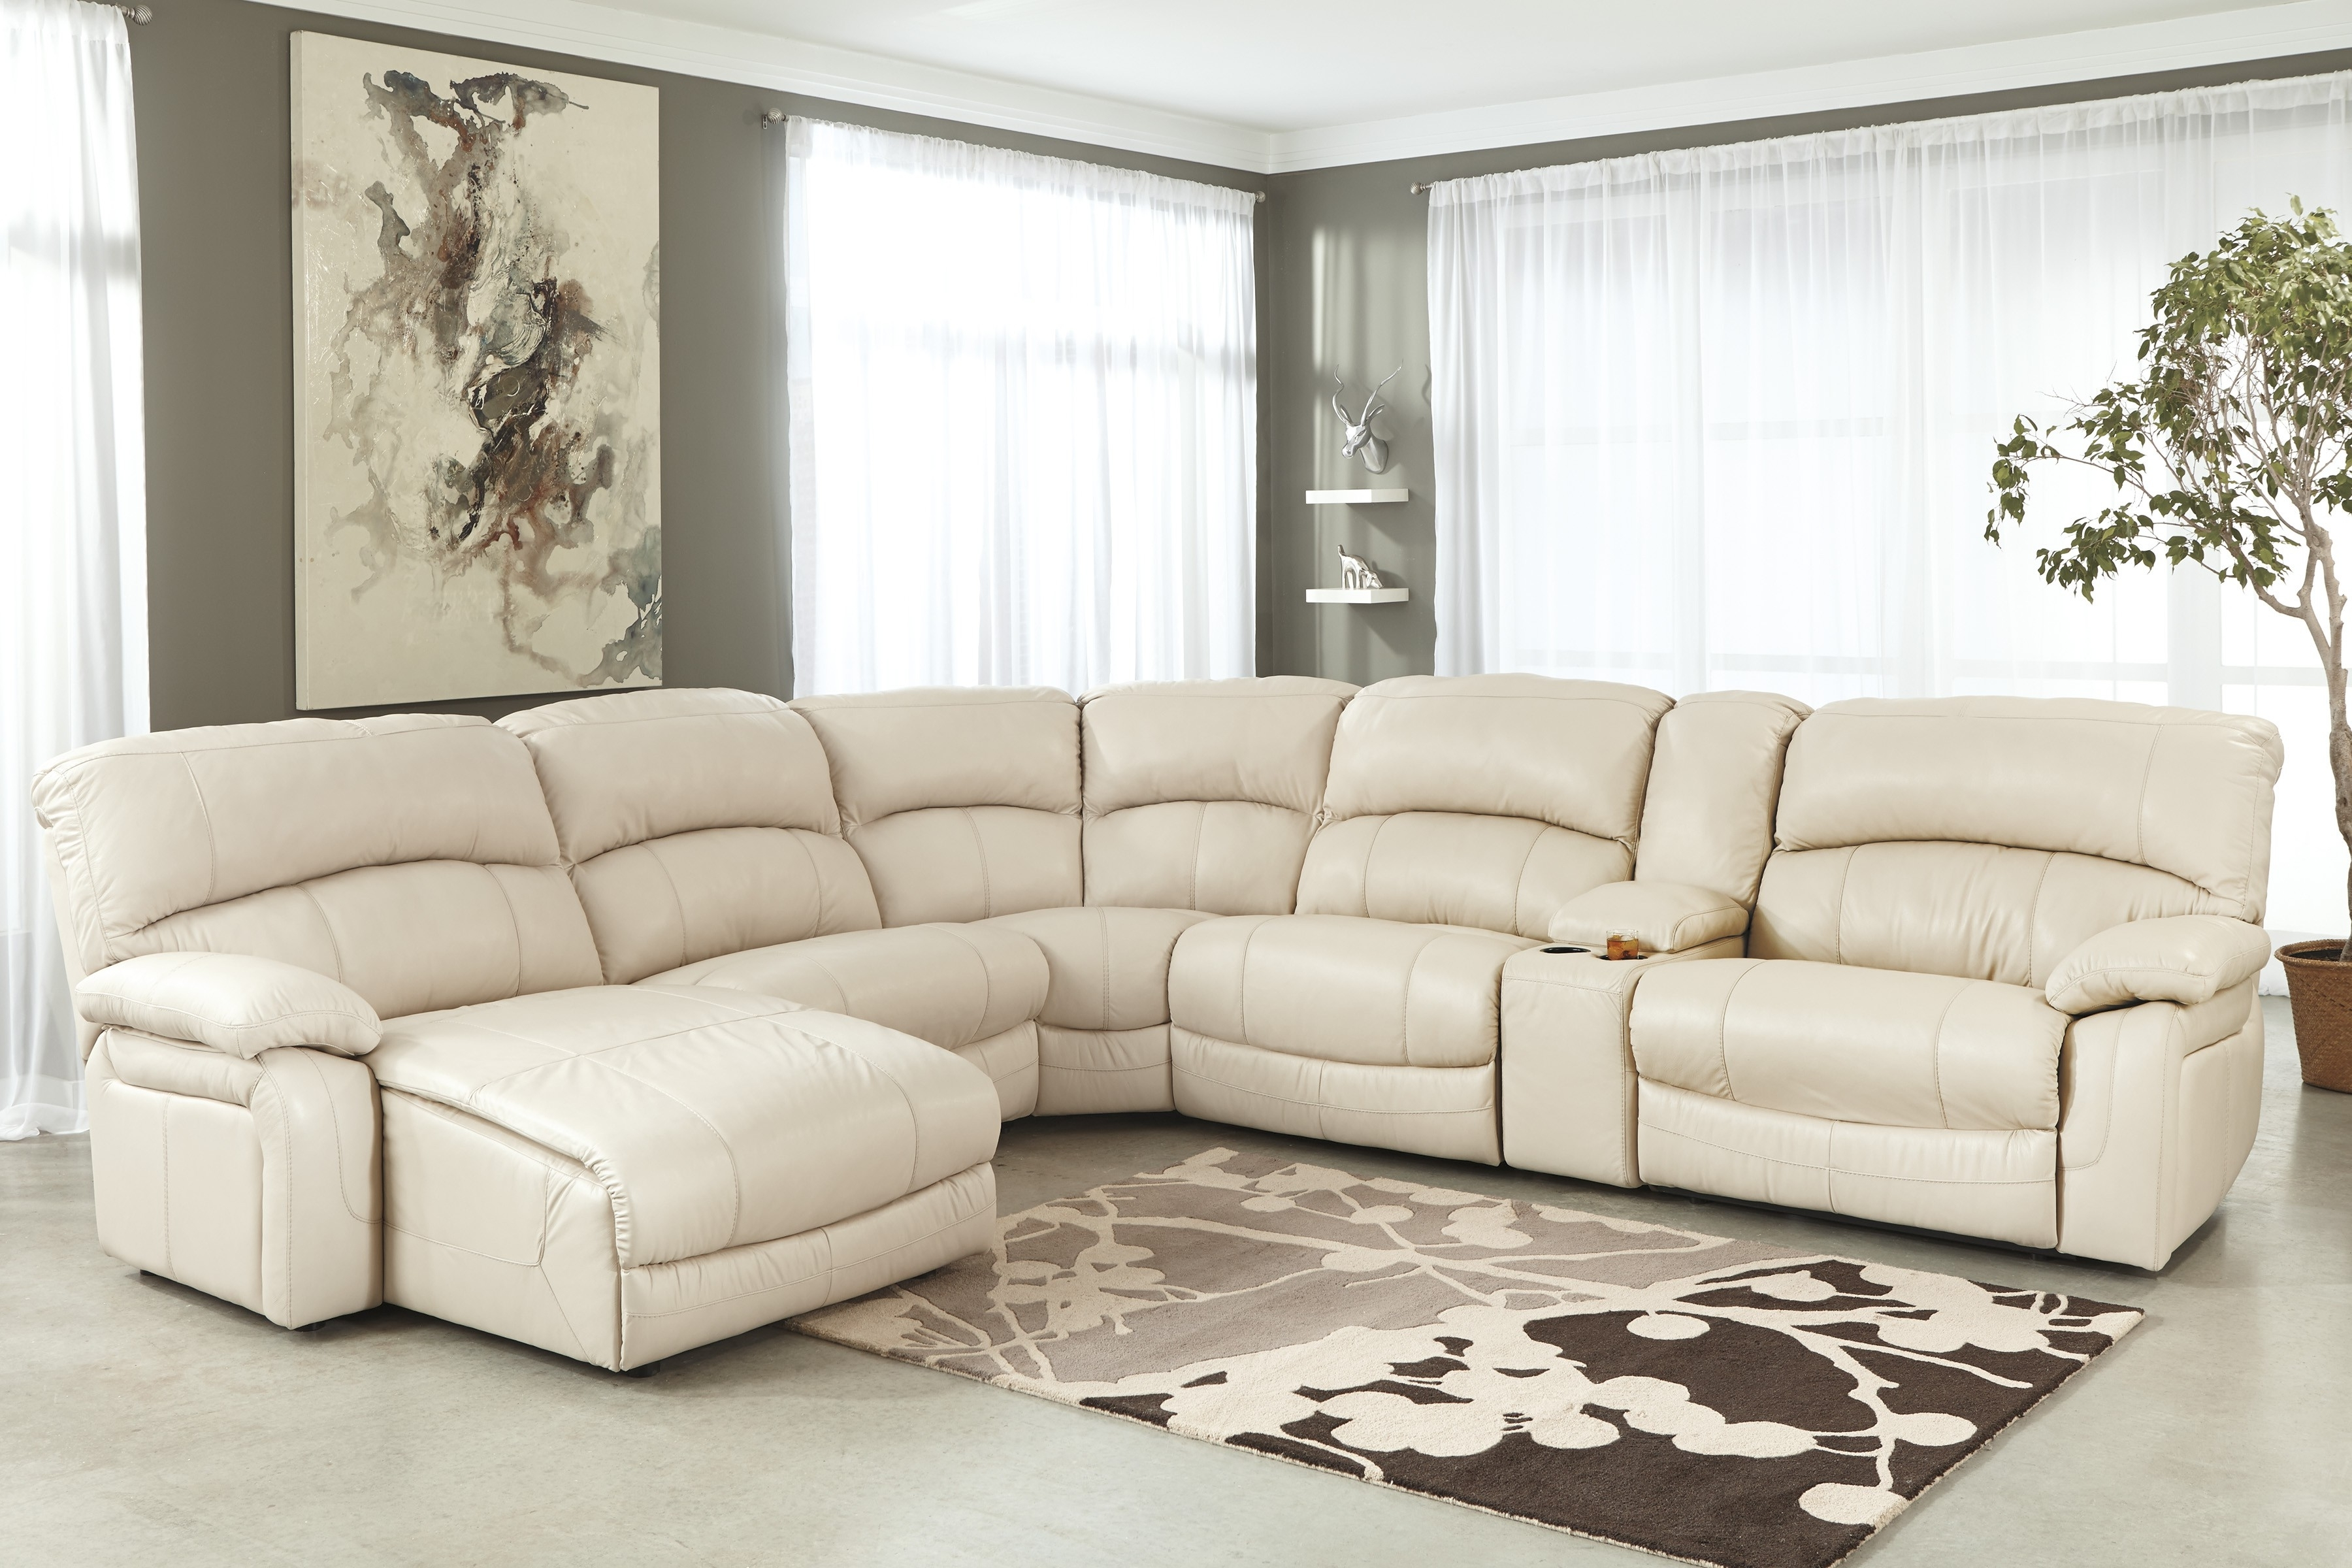 Reclining U Shaped Sectionals Inside Popular Sectional Sofa Design: Most Inspired White Leather Sectional Sofa (View 19 of 20)